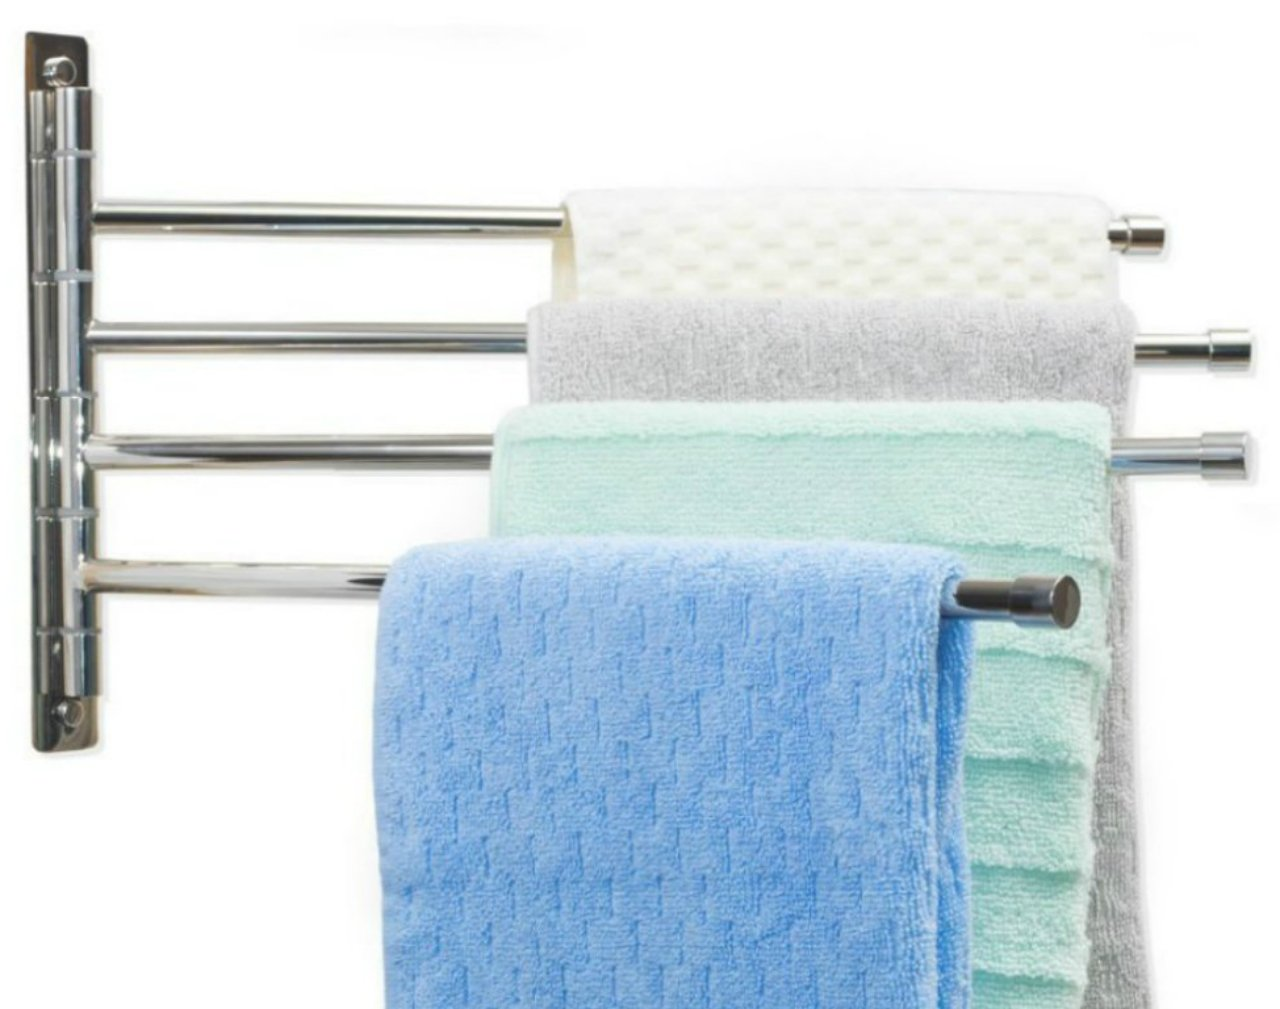 Towel Racks for Bathroom - Stainless Steel Swing Out Towel Bar - Space Saving Swinging Towel Bar for Bathroom - Wall Mounted Towel Holder Organizer- Easy To Install - Polished Finish(20X10'')